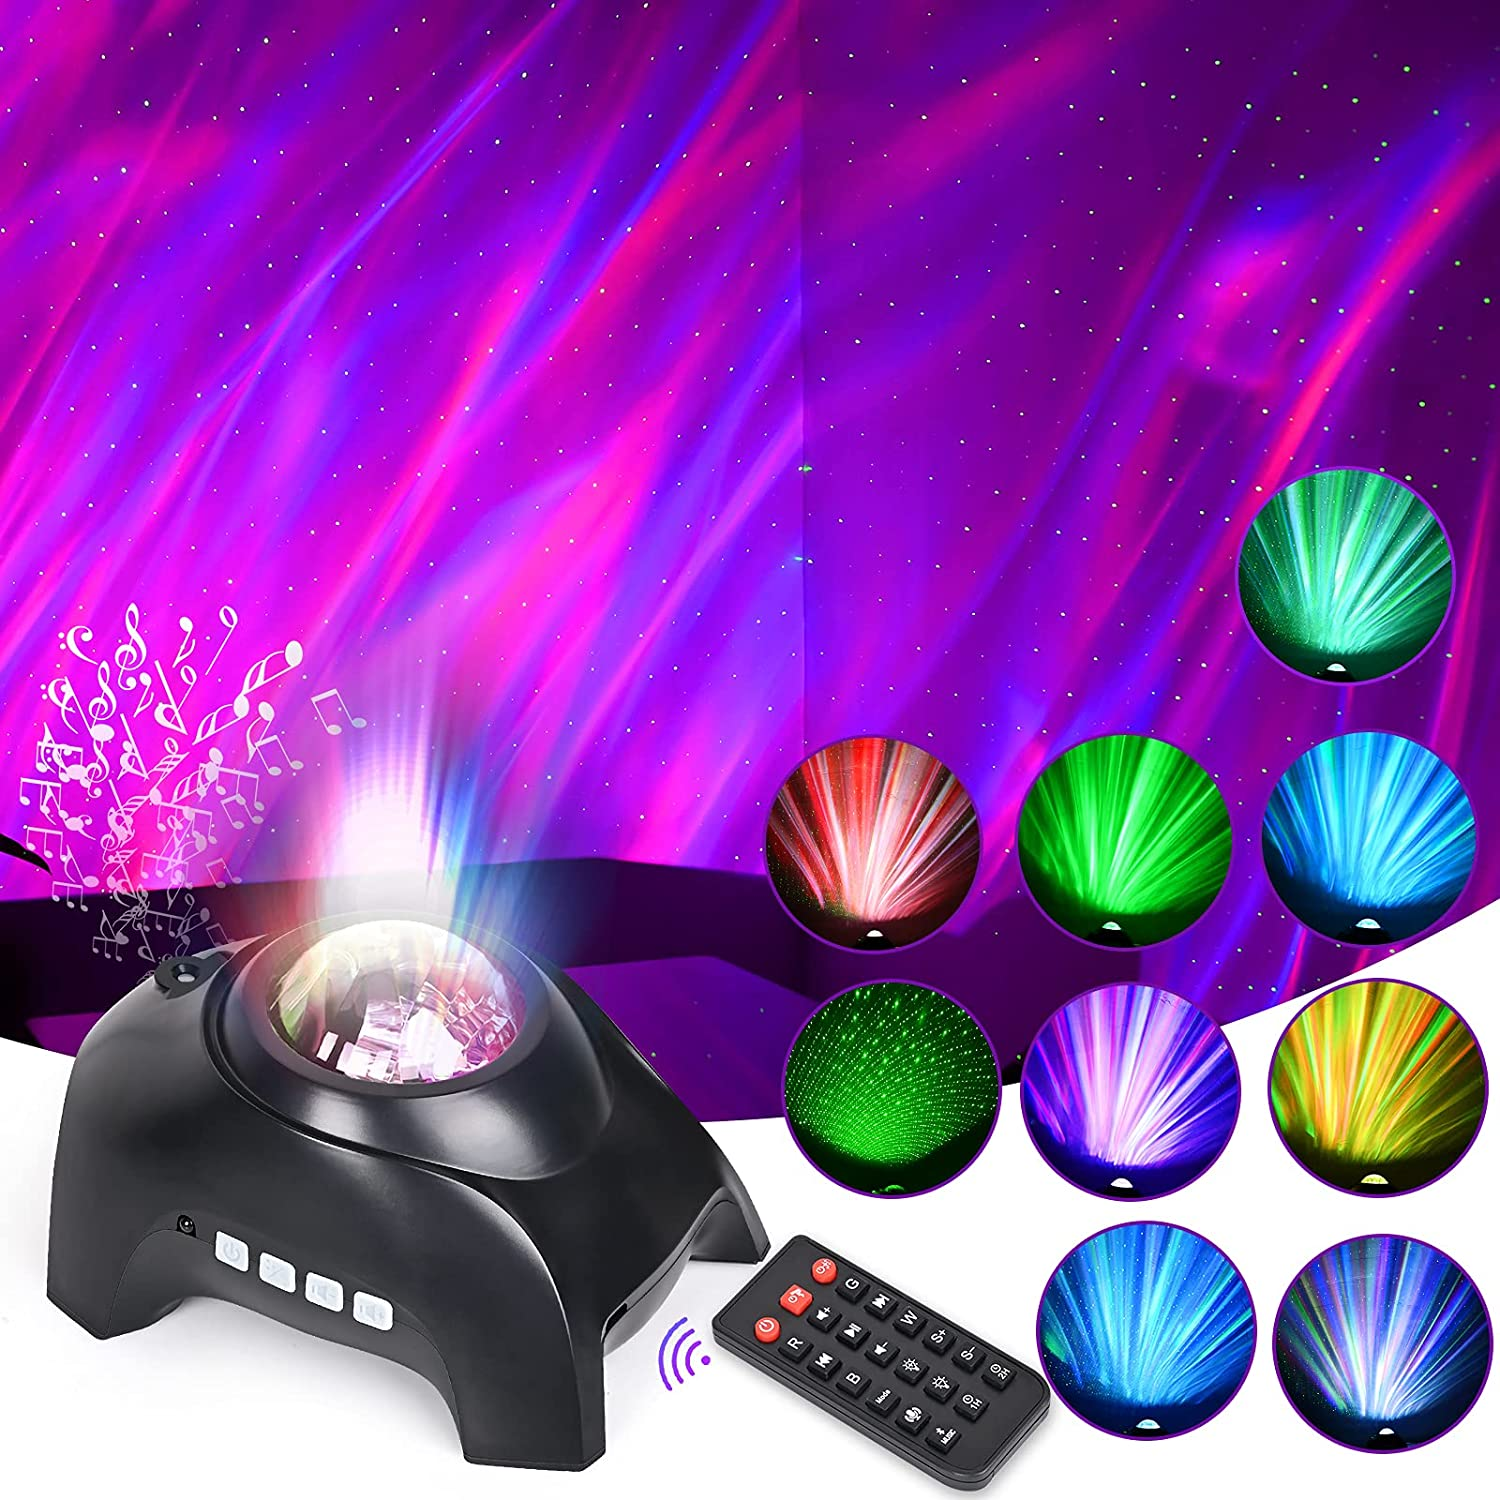 LED Aurora Projector, Star Projector Bluetooth Music Speaker, White Noise Night Light Galaxy Projector for Kids Adults , for Kids Adult Room Decor/Birthday/Party